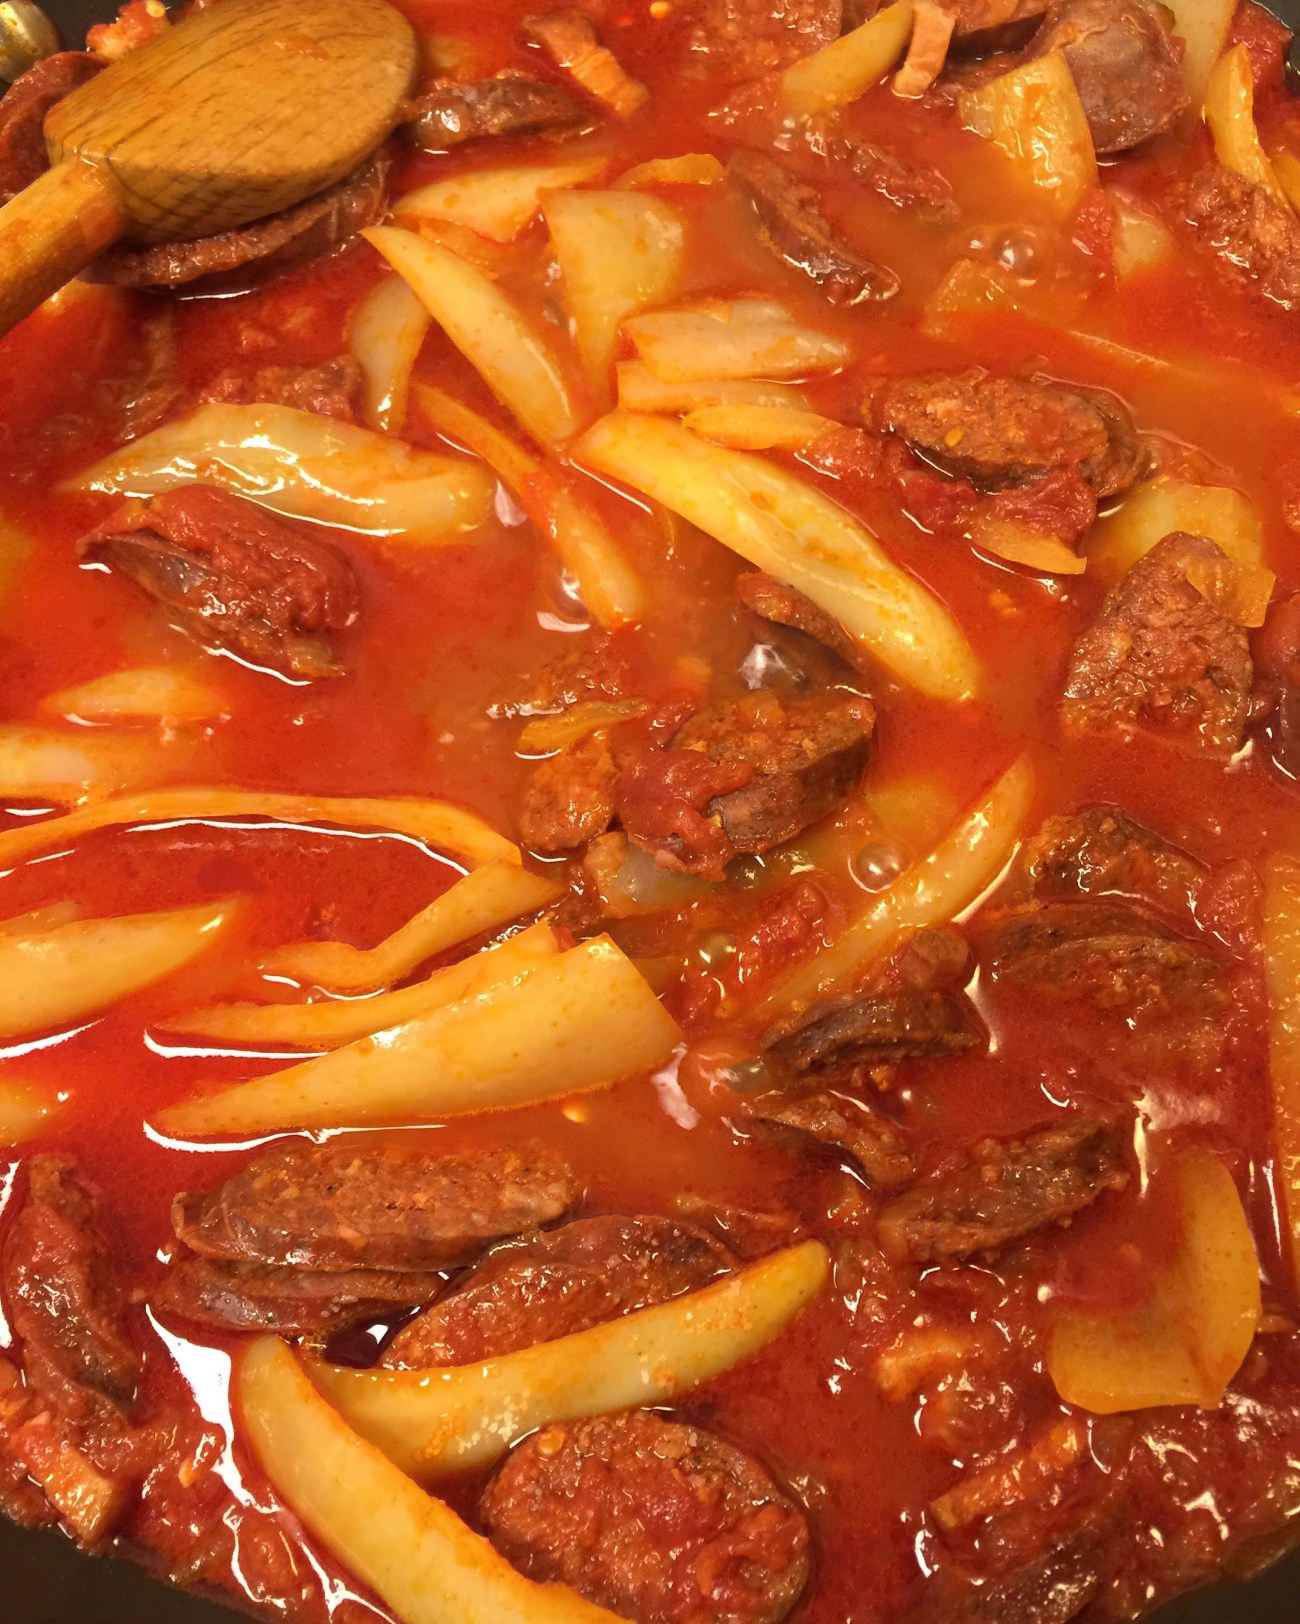 SPICY HUNGARIAN SAUSAGE GOULASH (LESCO)